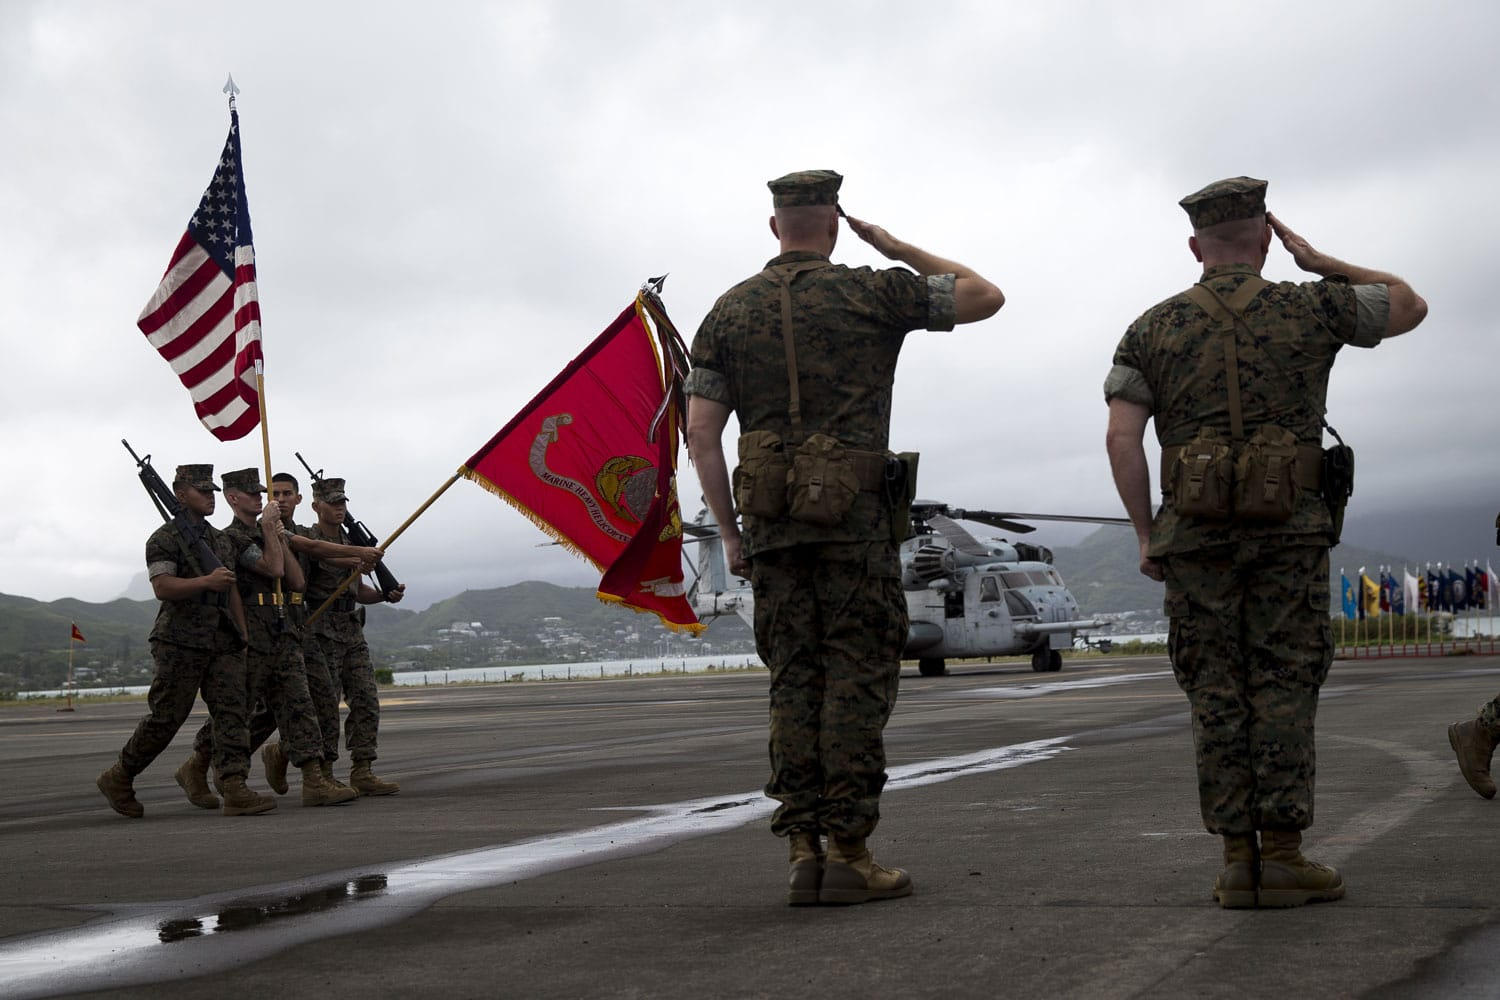 U.S. Marine Corps Lt. Col. Eric D. Purcell, off-going commanding officer, Marine Heavy Helicopter Squadron 463, and U.S. Marine Corps Lt. Col. Kevin G. Hunter, on-coming commanding officer, salute the colors during the Marine Heavy Helicopter Squadron 463 Change of Command aboard Marine Corps Base Hawaii.